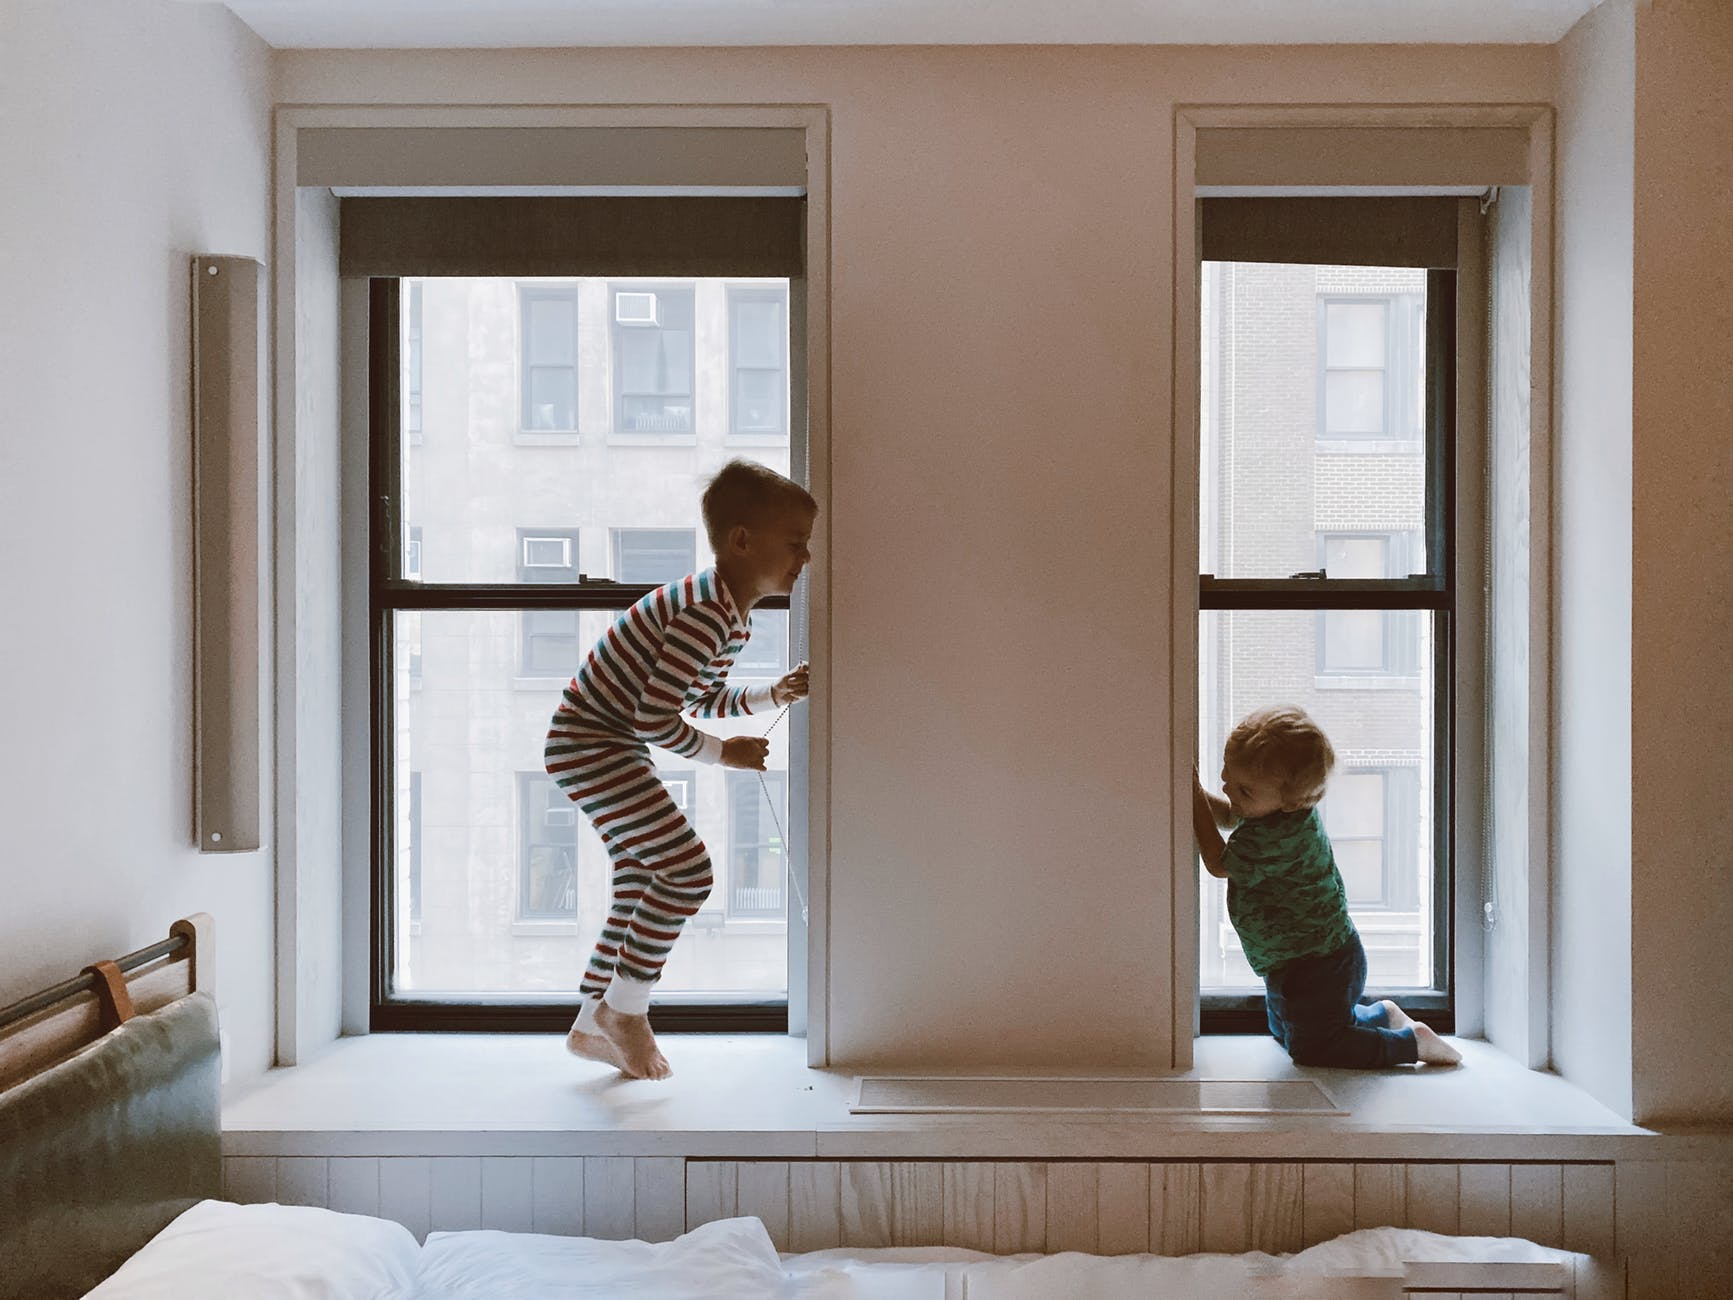 30 Indoor Activities to Keep Toddlers Busy